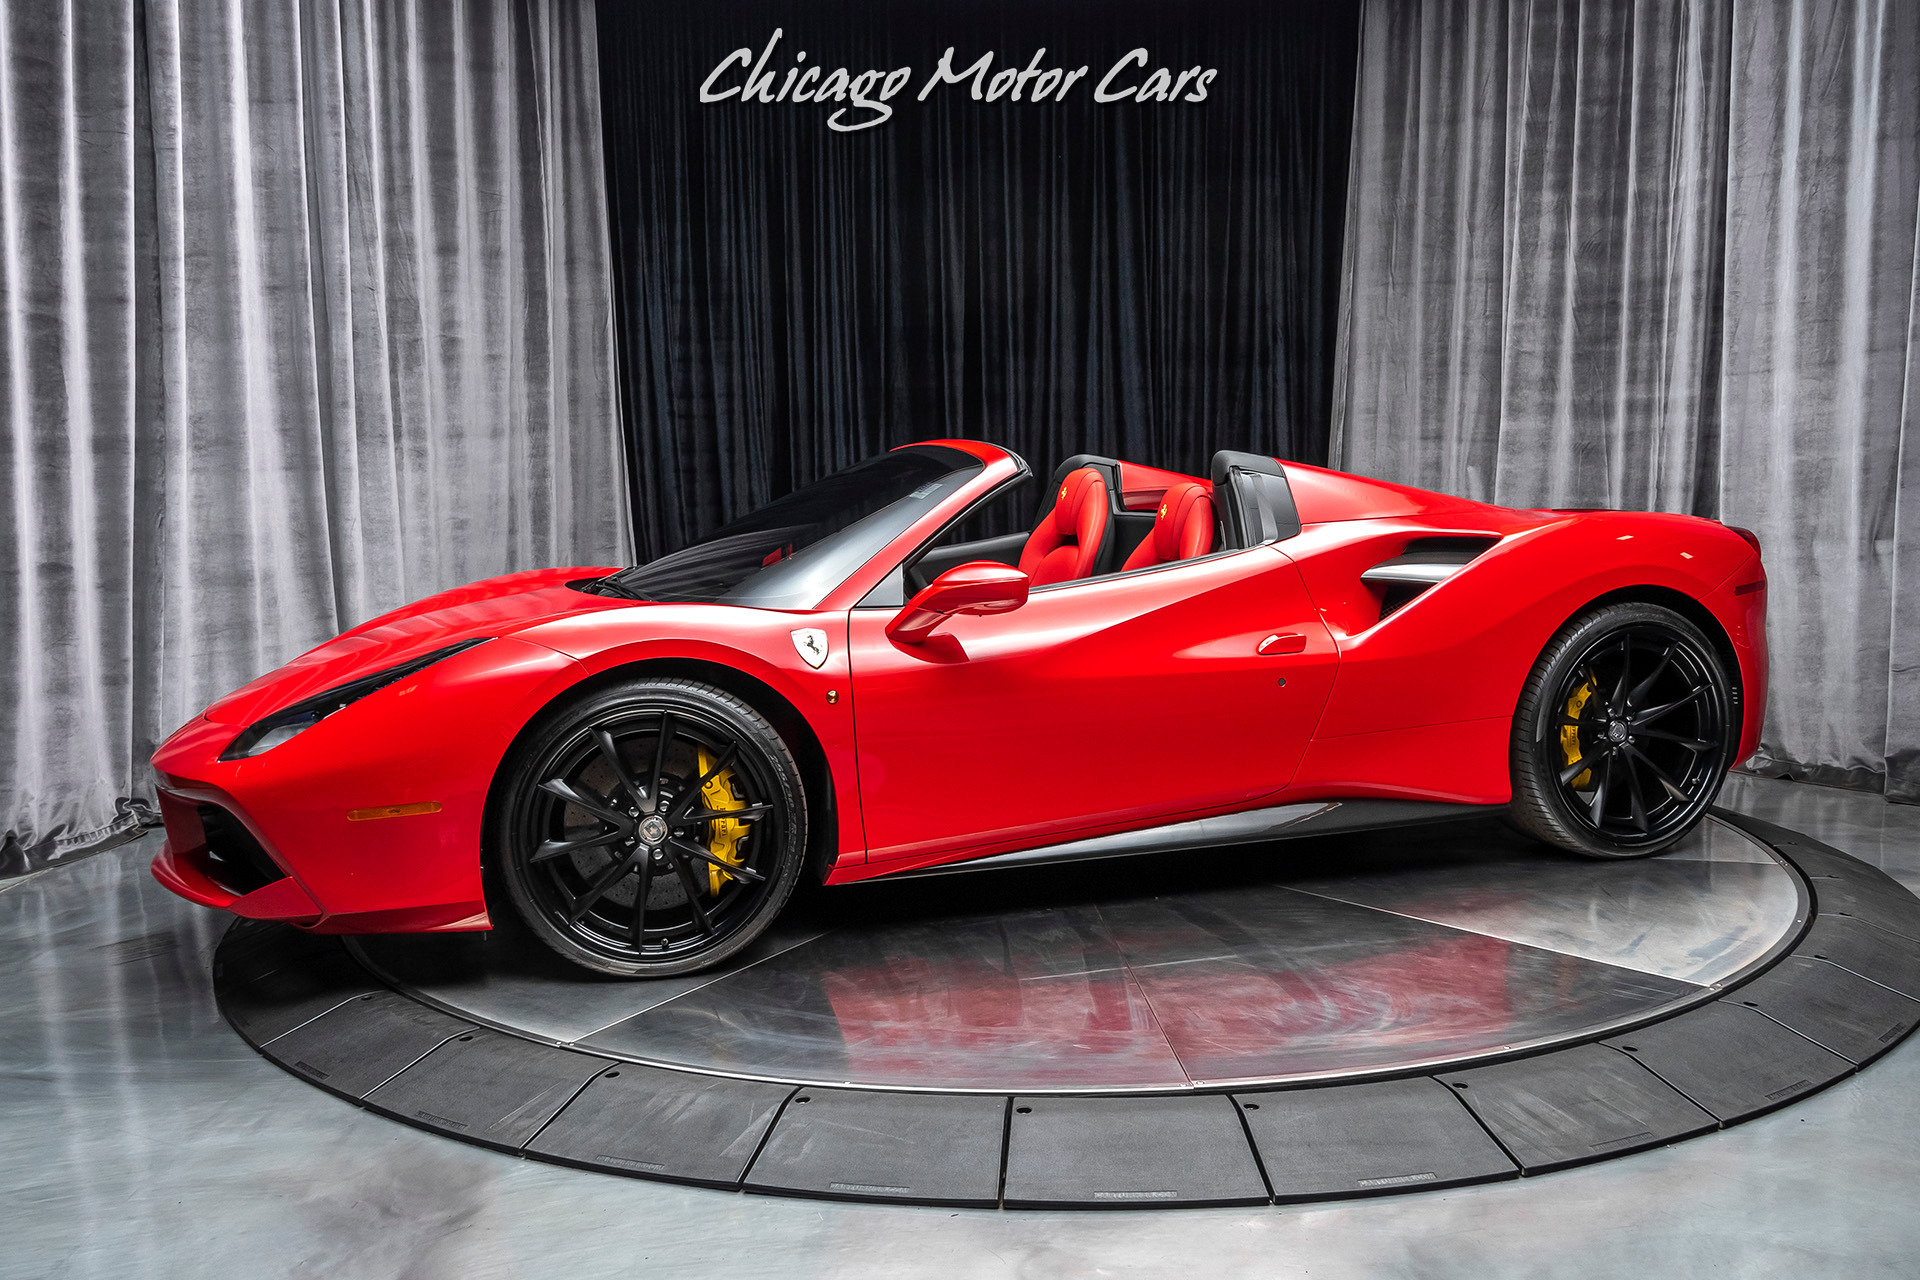 2018 Ferrari 488 Spider Convertible 21 22 Hre Performance Wheels Carbon Fiber Sport Exhaust Chicago Motor Cars Inc Official Corporate Website For Chicago Motor Cars